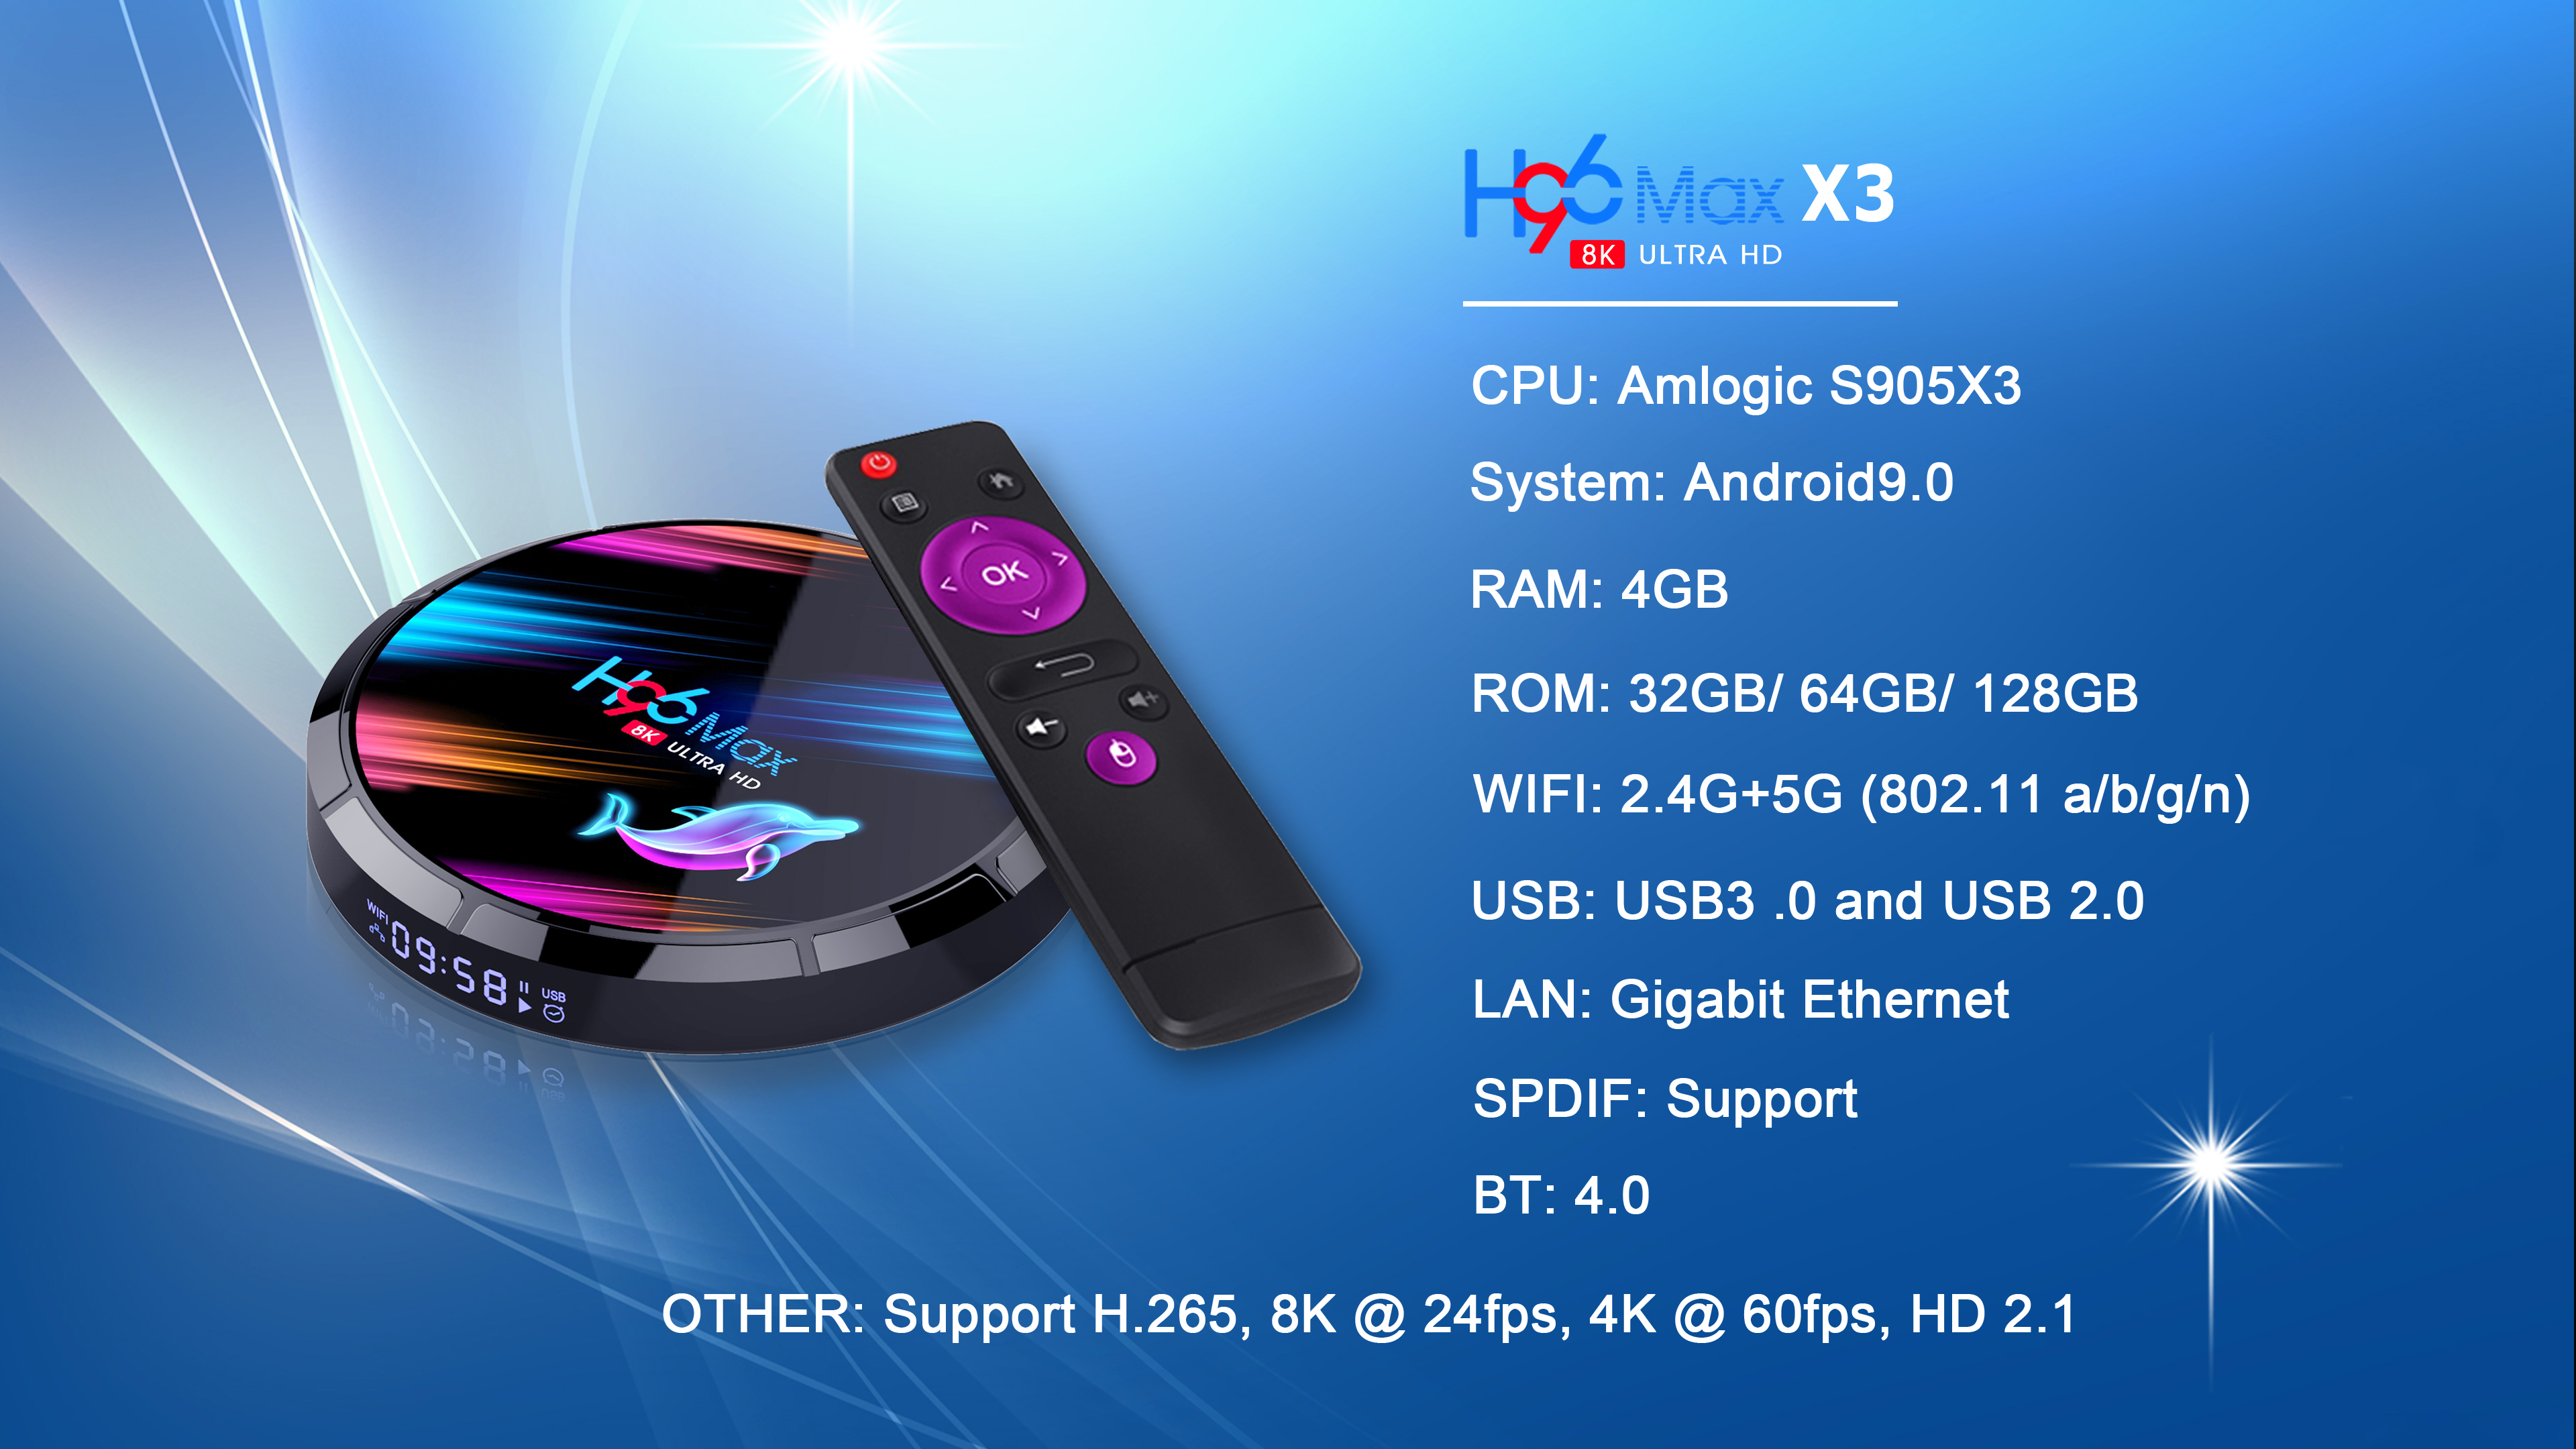 H96 Max X3 S905X3 8K ULTRA HD TV Box 4GB RAM + eMMC 32GB/ 64GB/ 128GB ROM 2.4G/5G WIFI 1000M Ethernet 9.0 Android Box 10